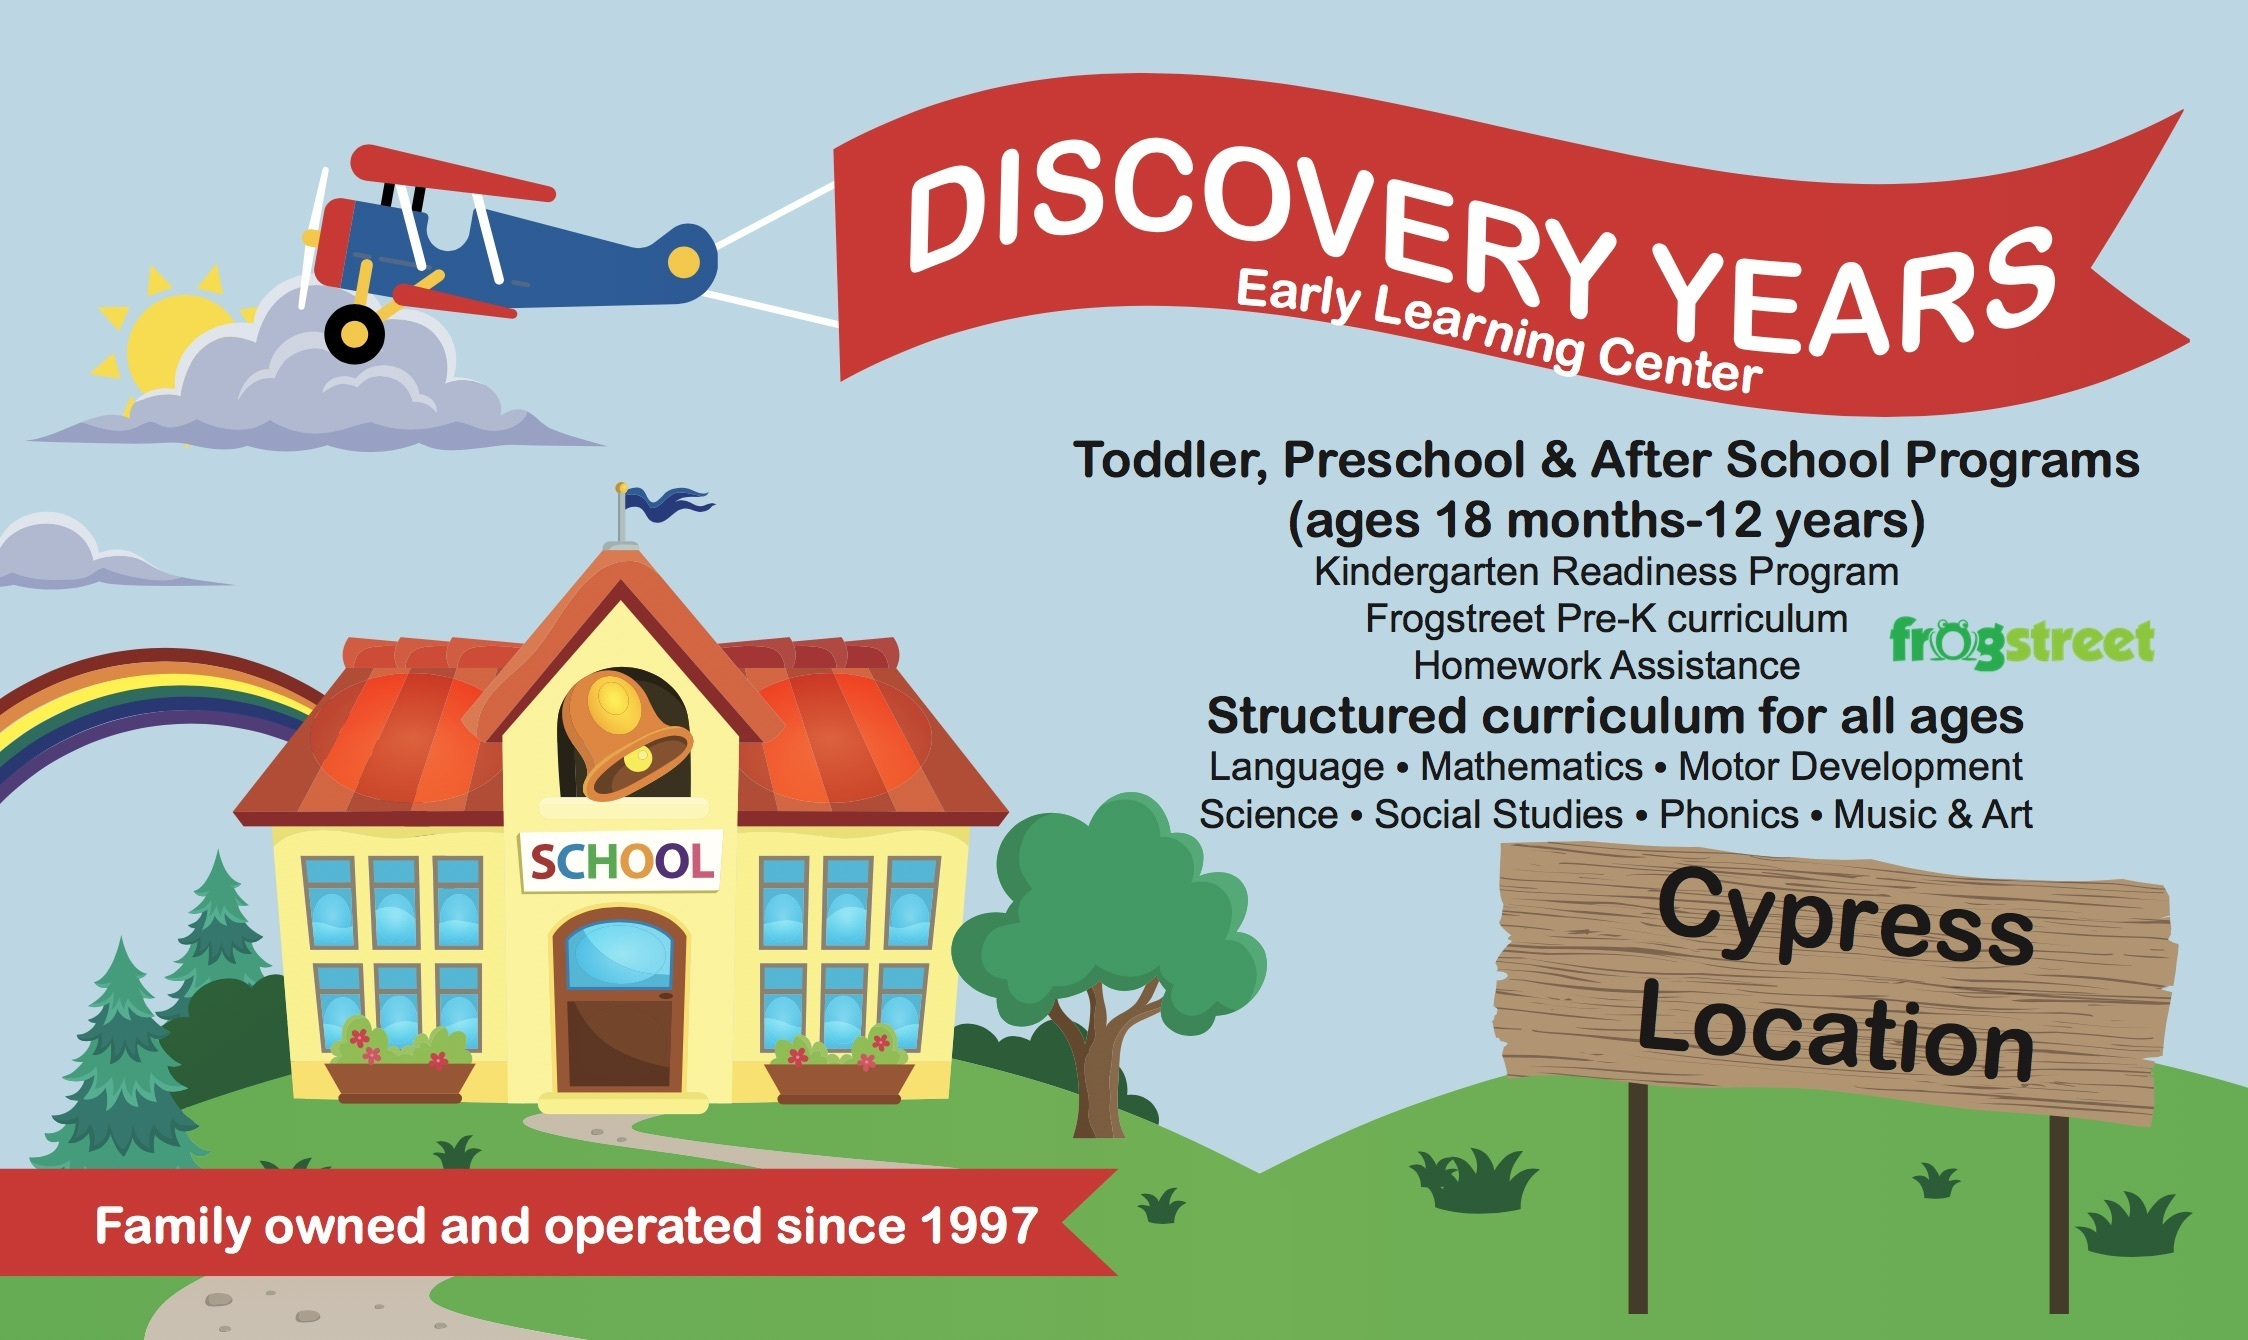 Discovery Years Early Learning Center (Live Online)